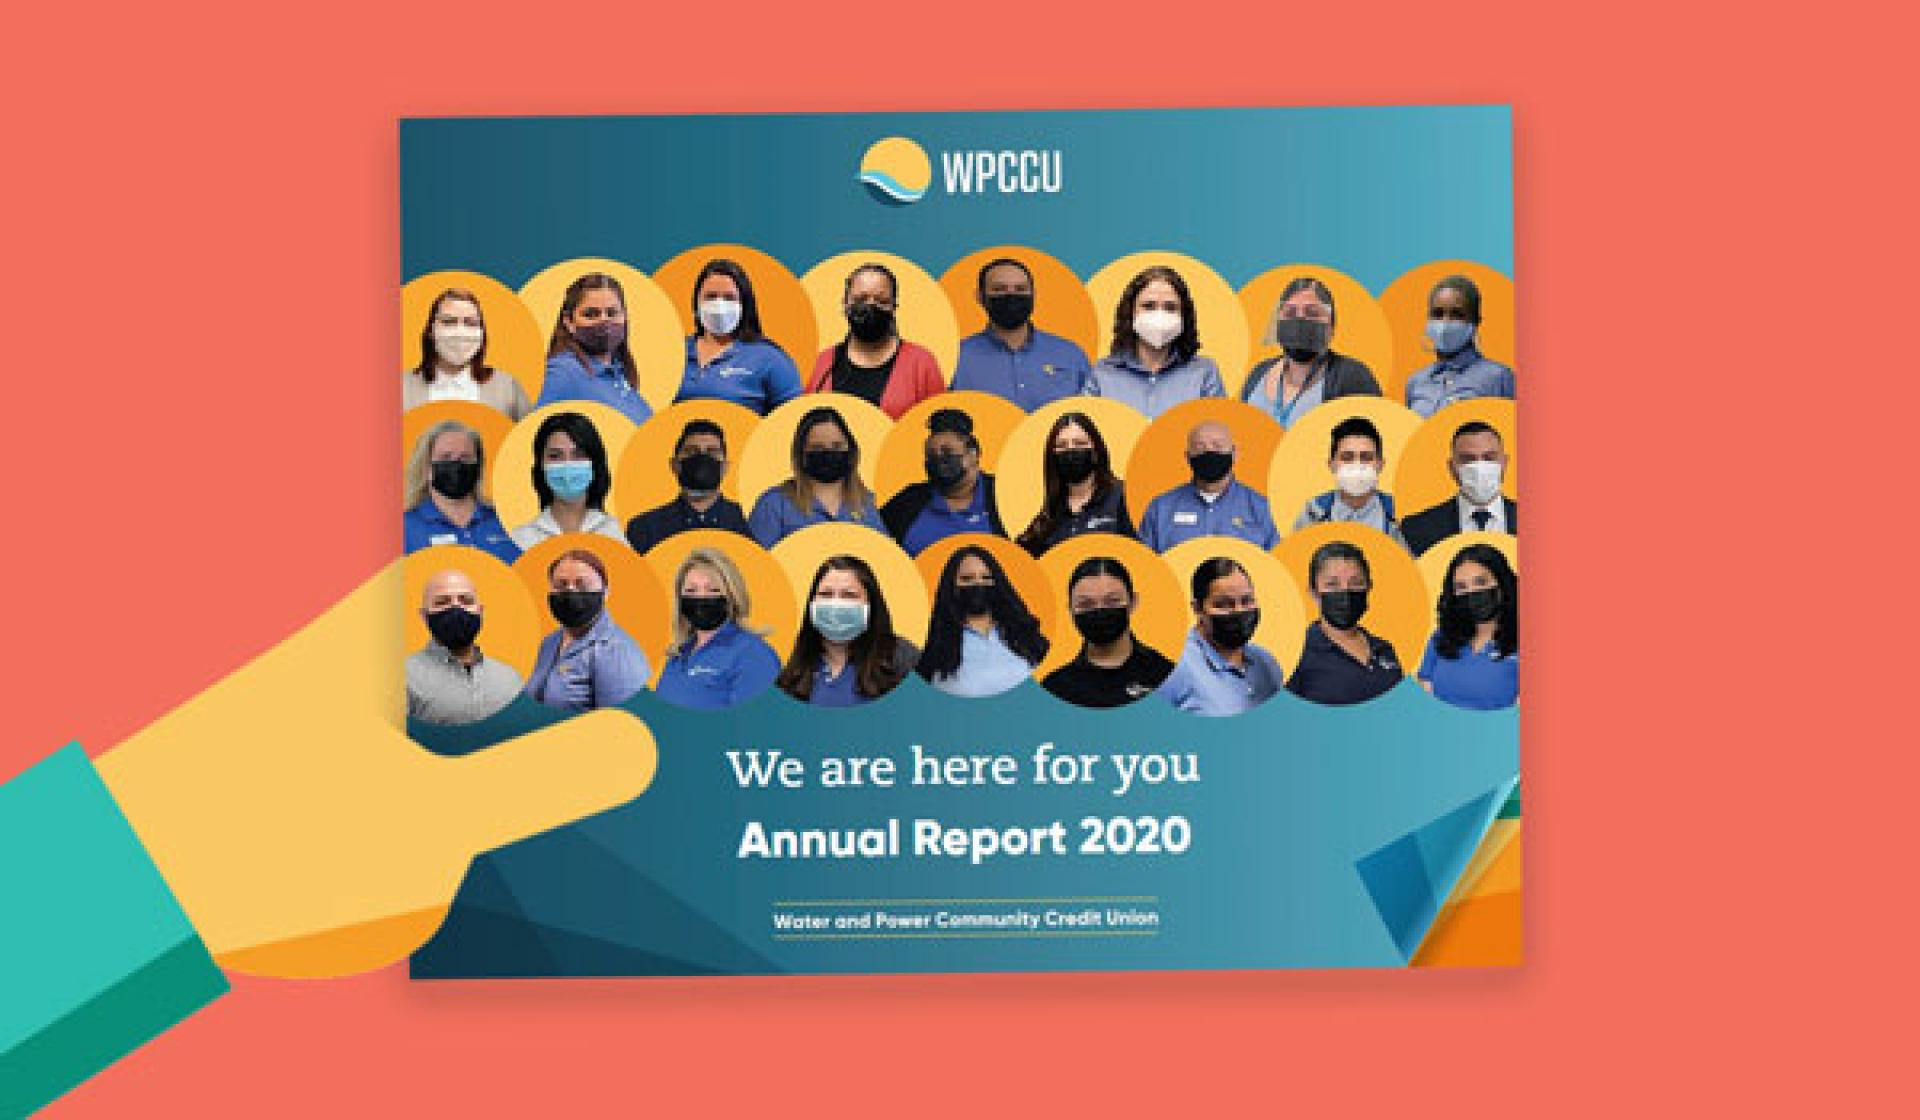 """WPCCU's Annual Report 2020. The cover displays several staff members, all of whom are wearing face masks. The caption below the photos reads: """"We are here for you."""""""